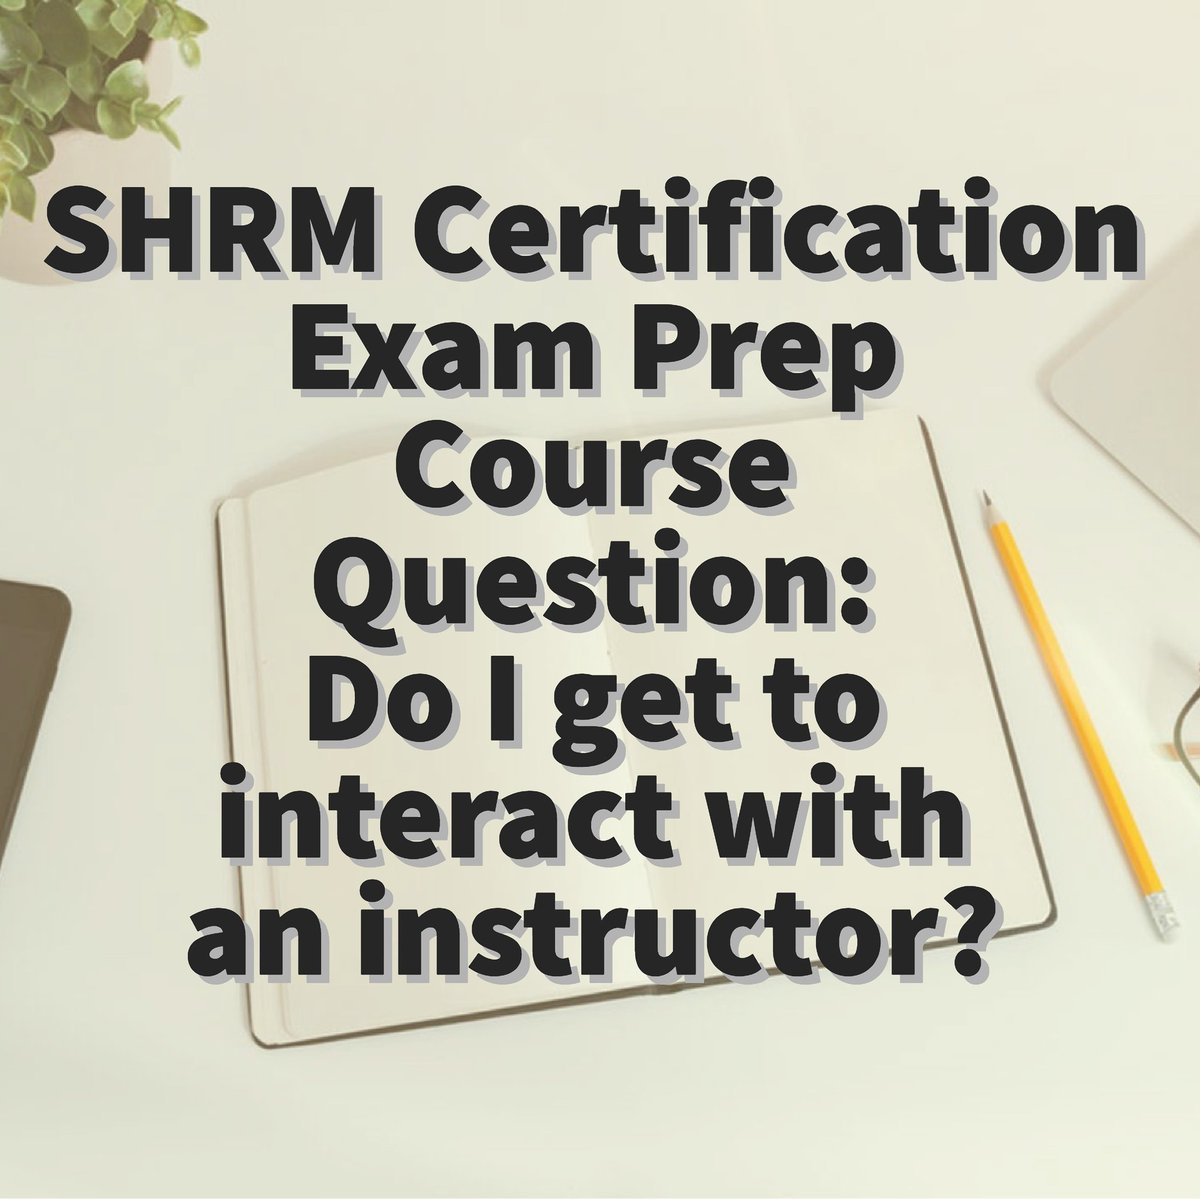 Hr jetpack hrjetpack twitter shrm certification exam prep course our course includes 24 live instructor led classes you will absolutely interact with the instructor xflitez Gallery